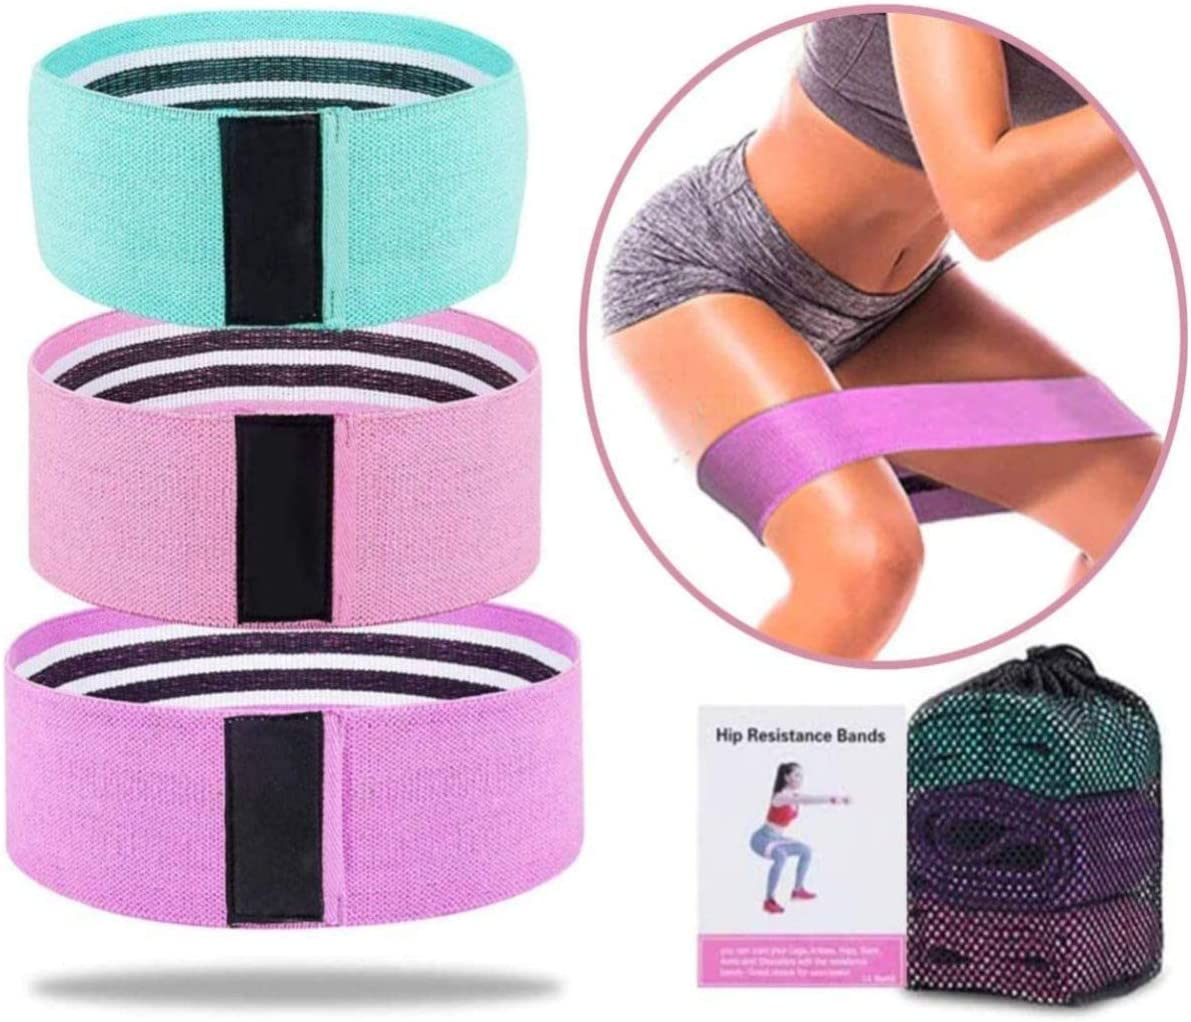 EZTECHO Booty Excellence Bands Set of 3 Legs Resistance for Max 78% OFF Butt and